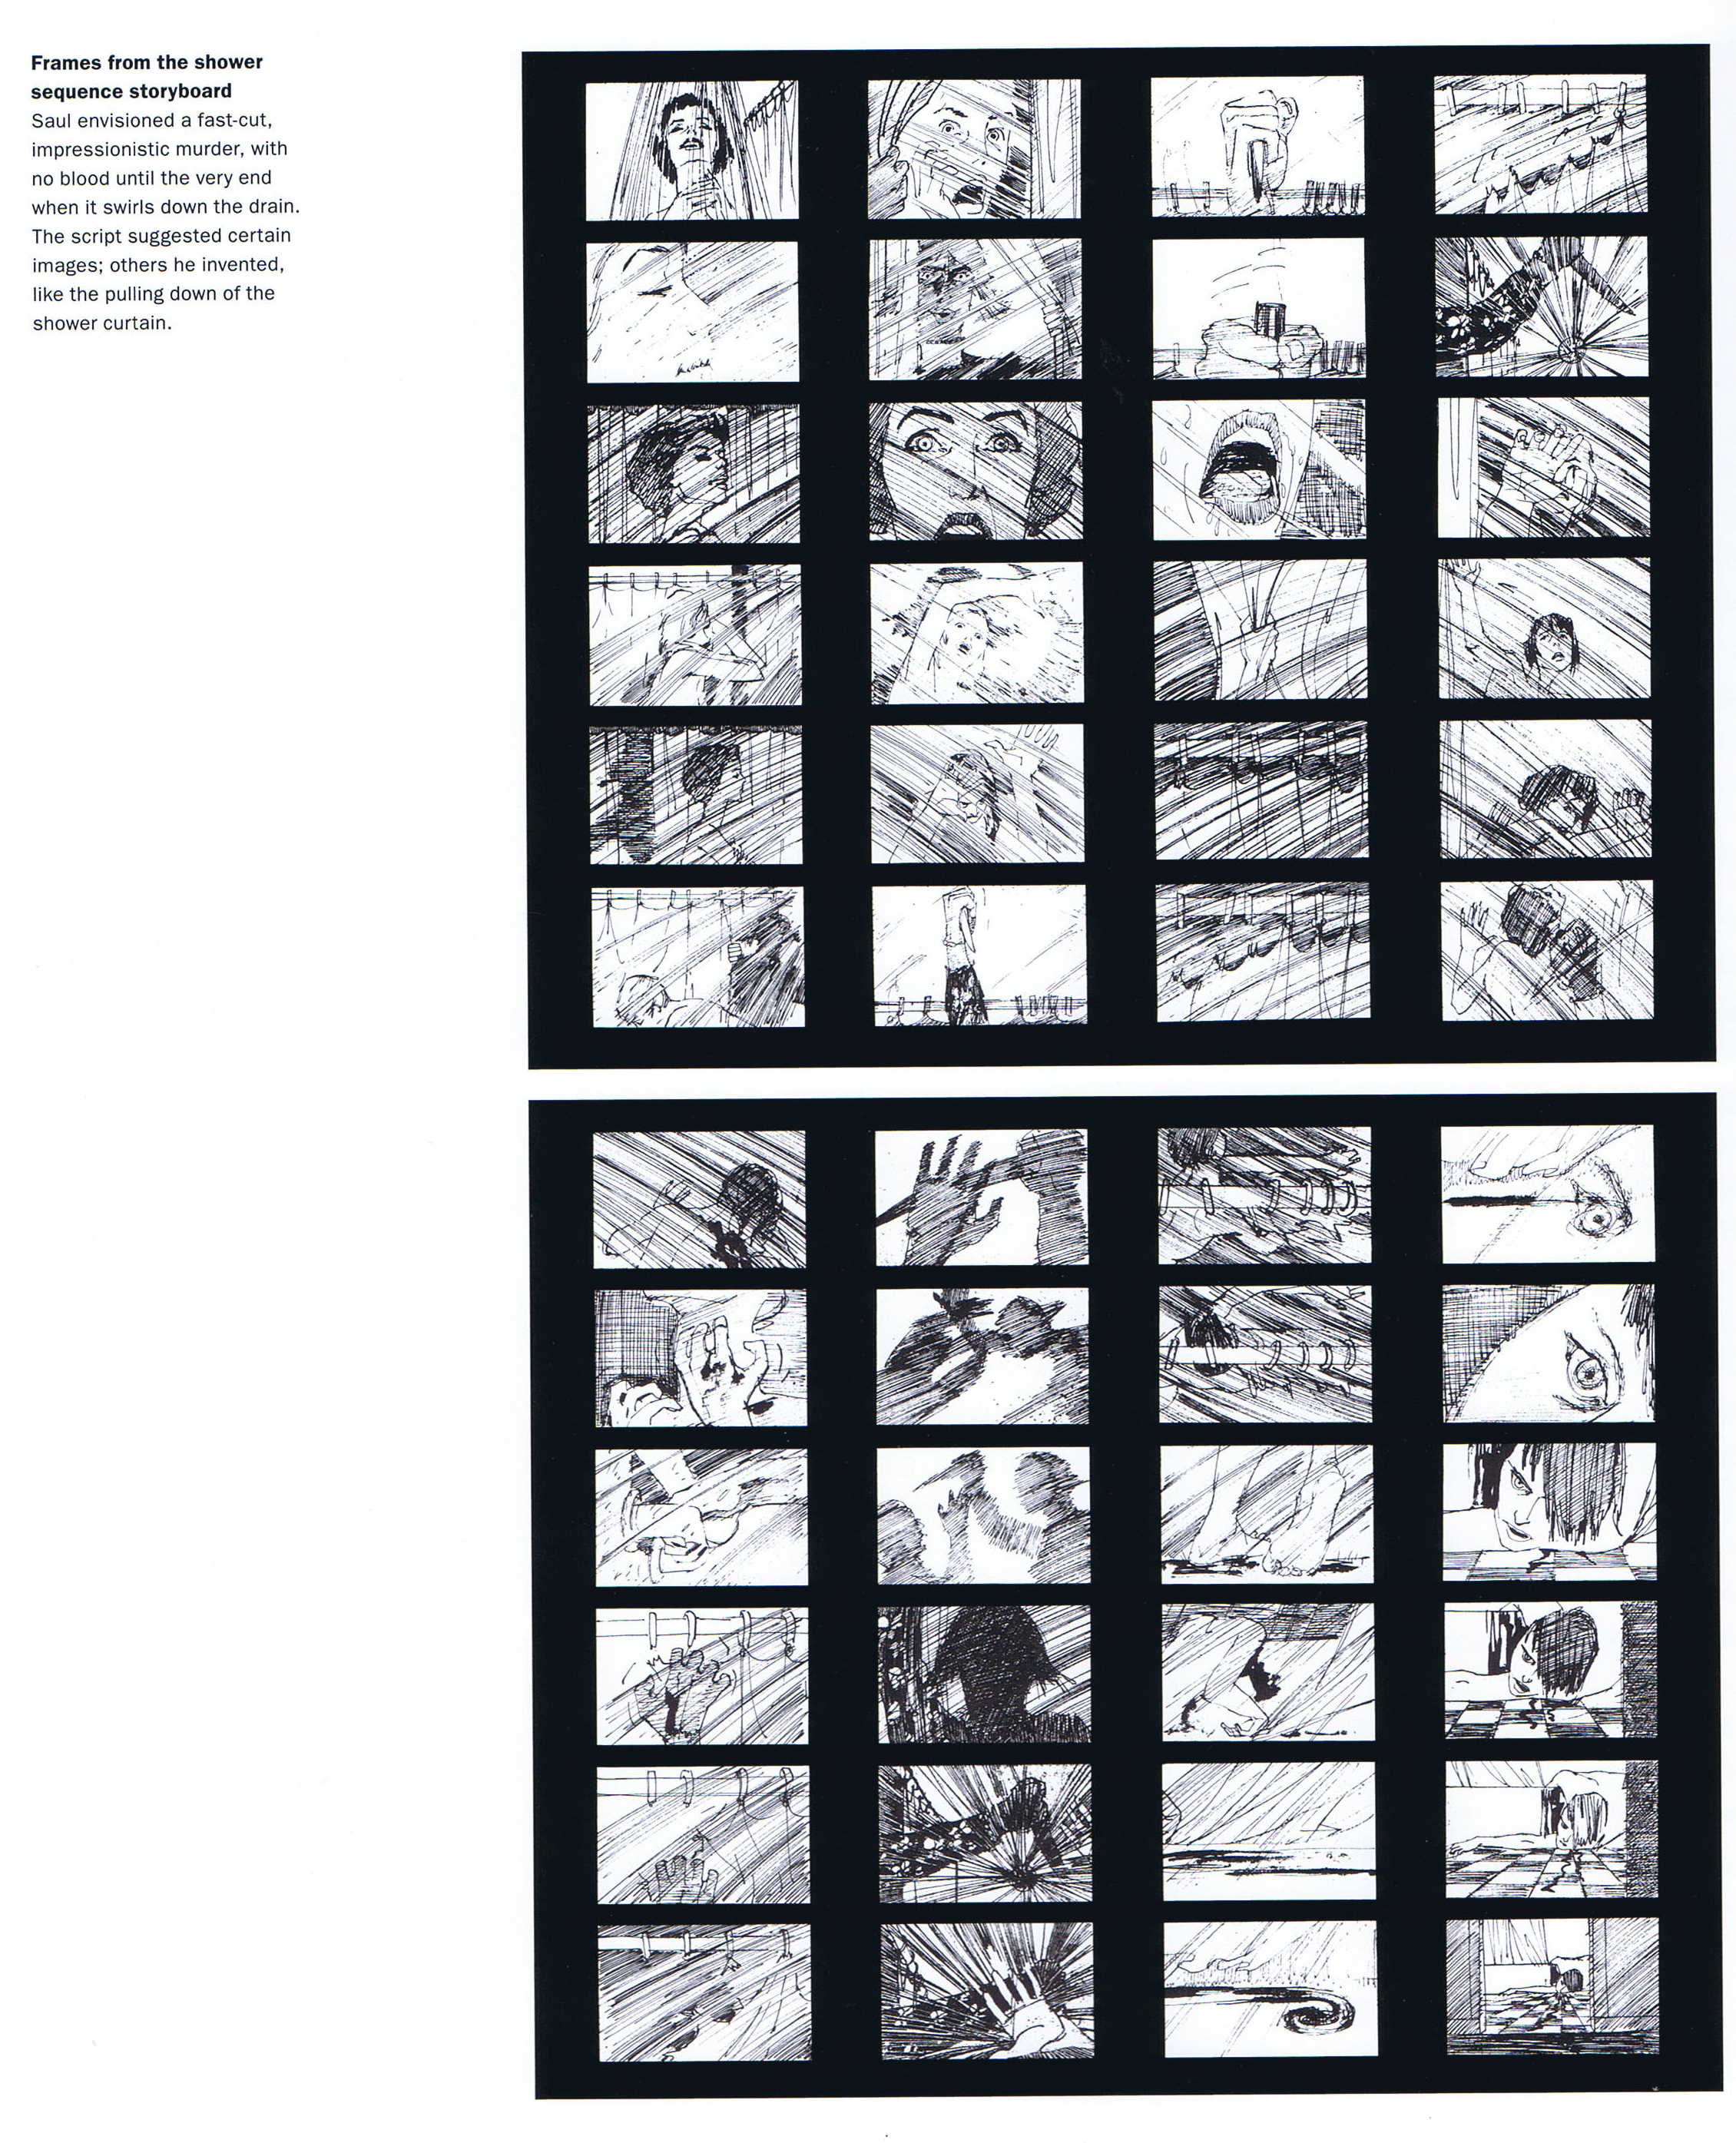 Psycho Shower Curtain With Sound - Saul bass s original storyboards for the famous shower scene in psycho